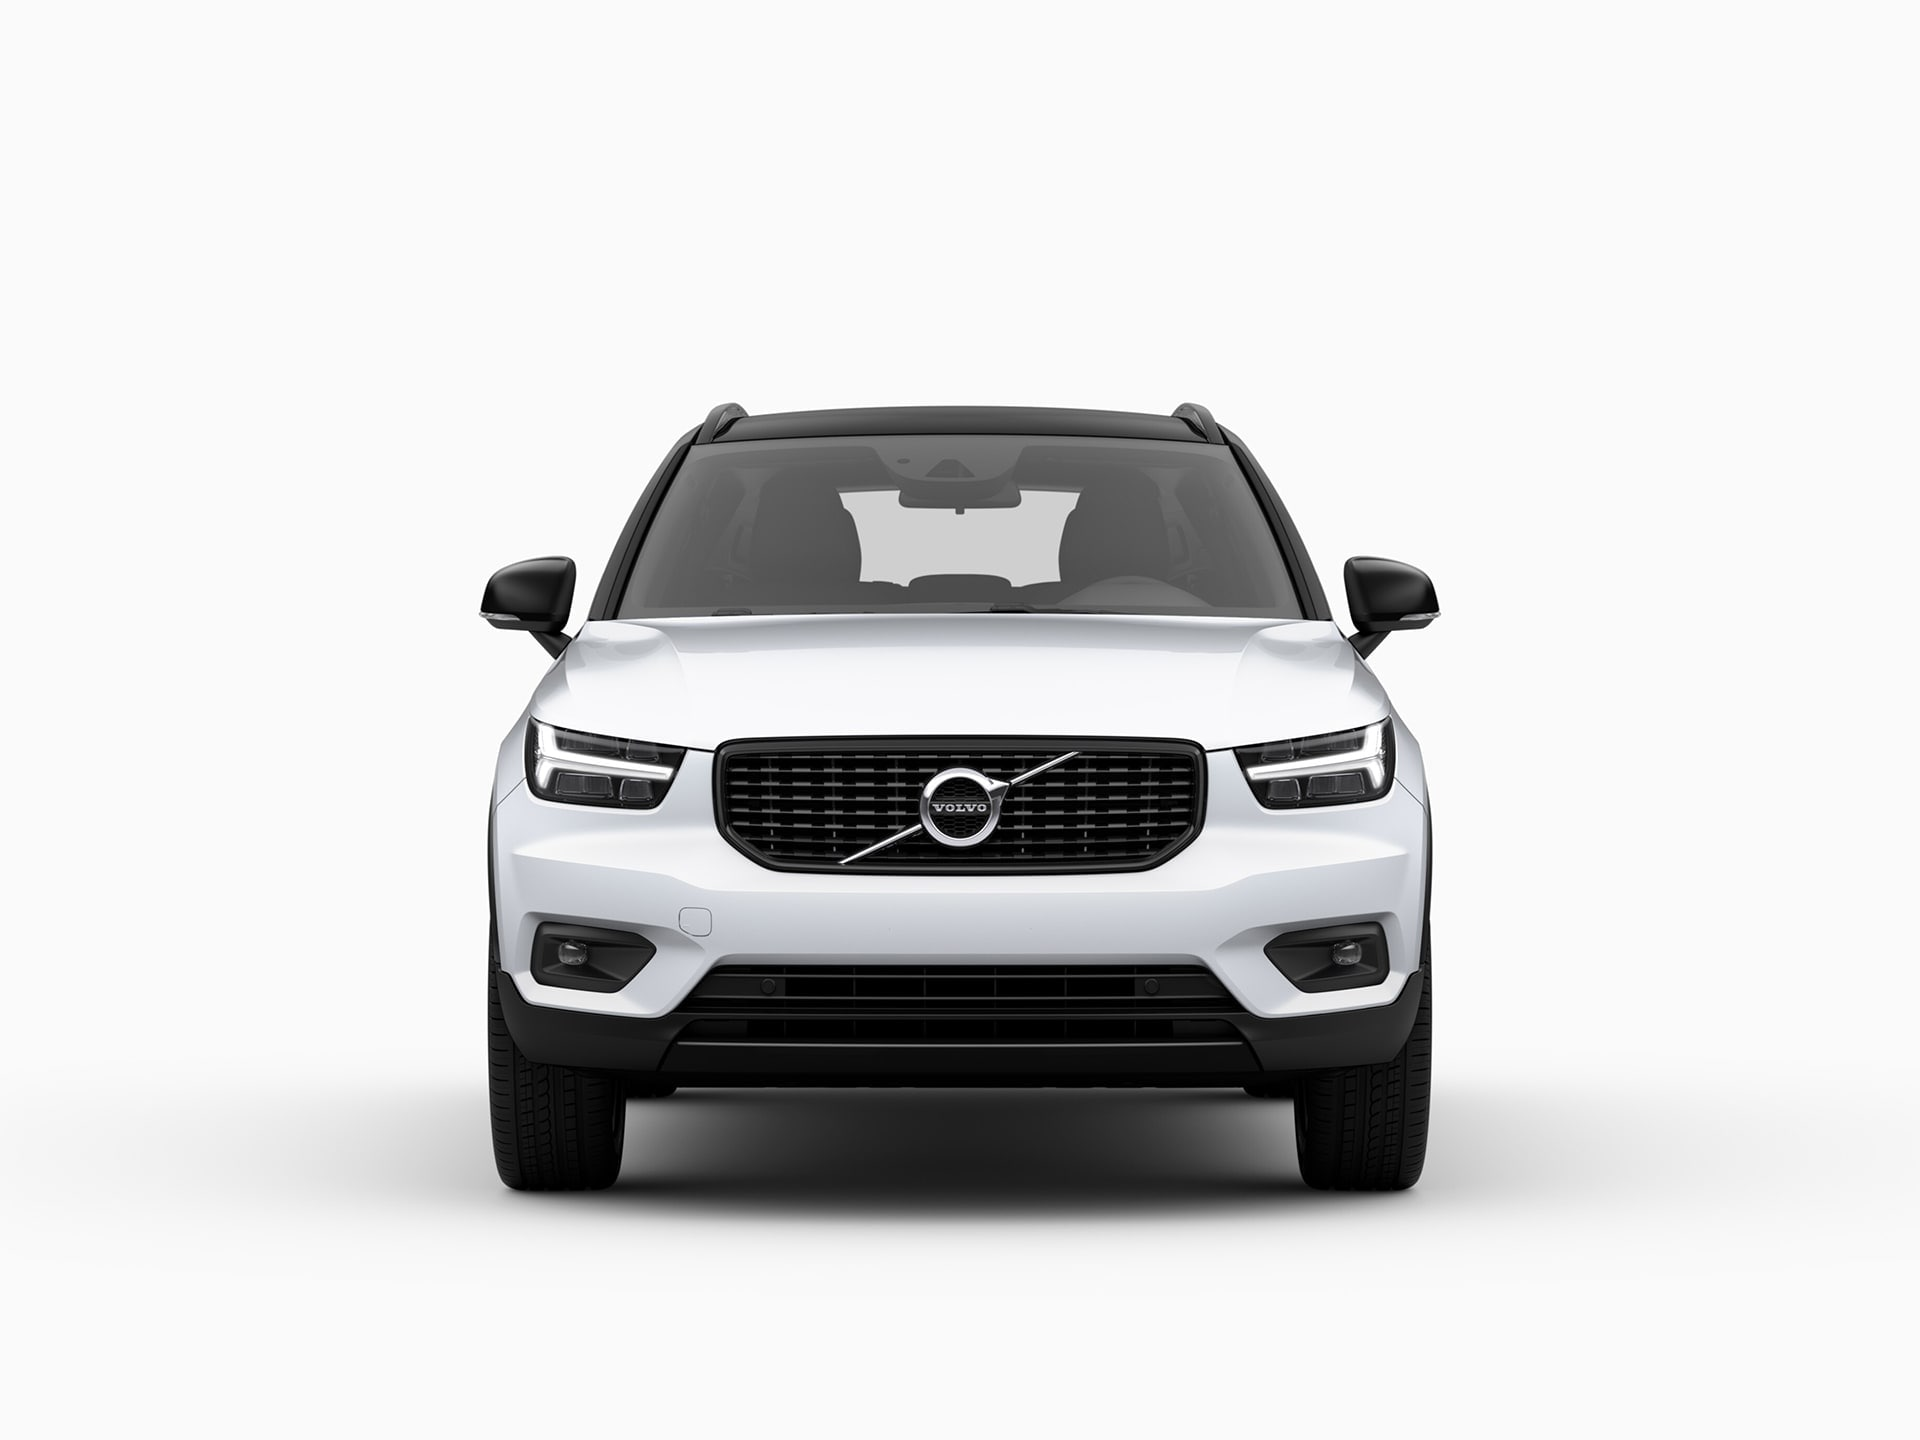 Avant d'un SUV Volvo XC40 Recharge Plug-in Hybrid.